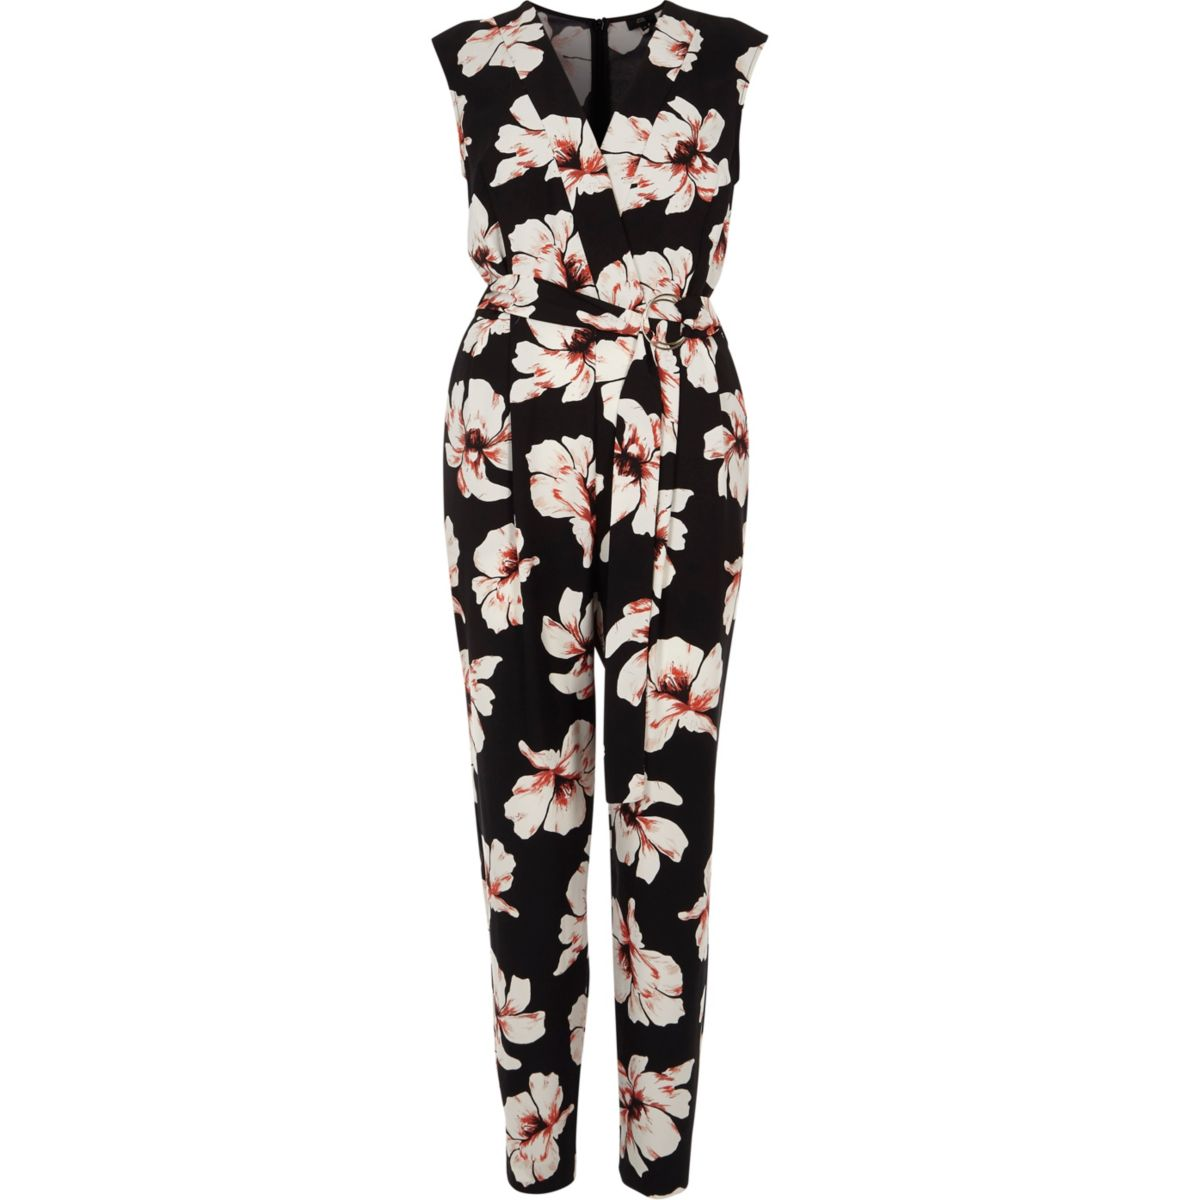 Black floral print sleeveless jumpsuit